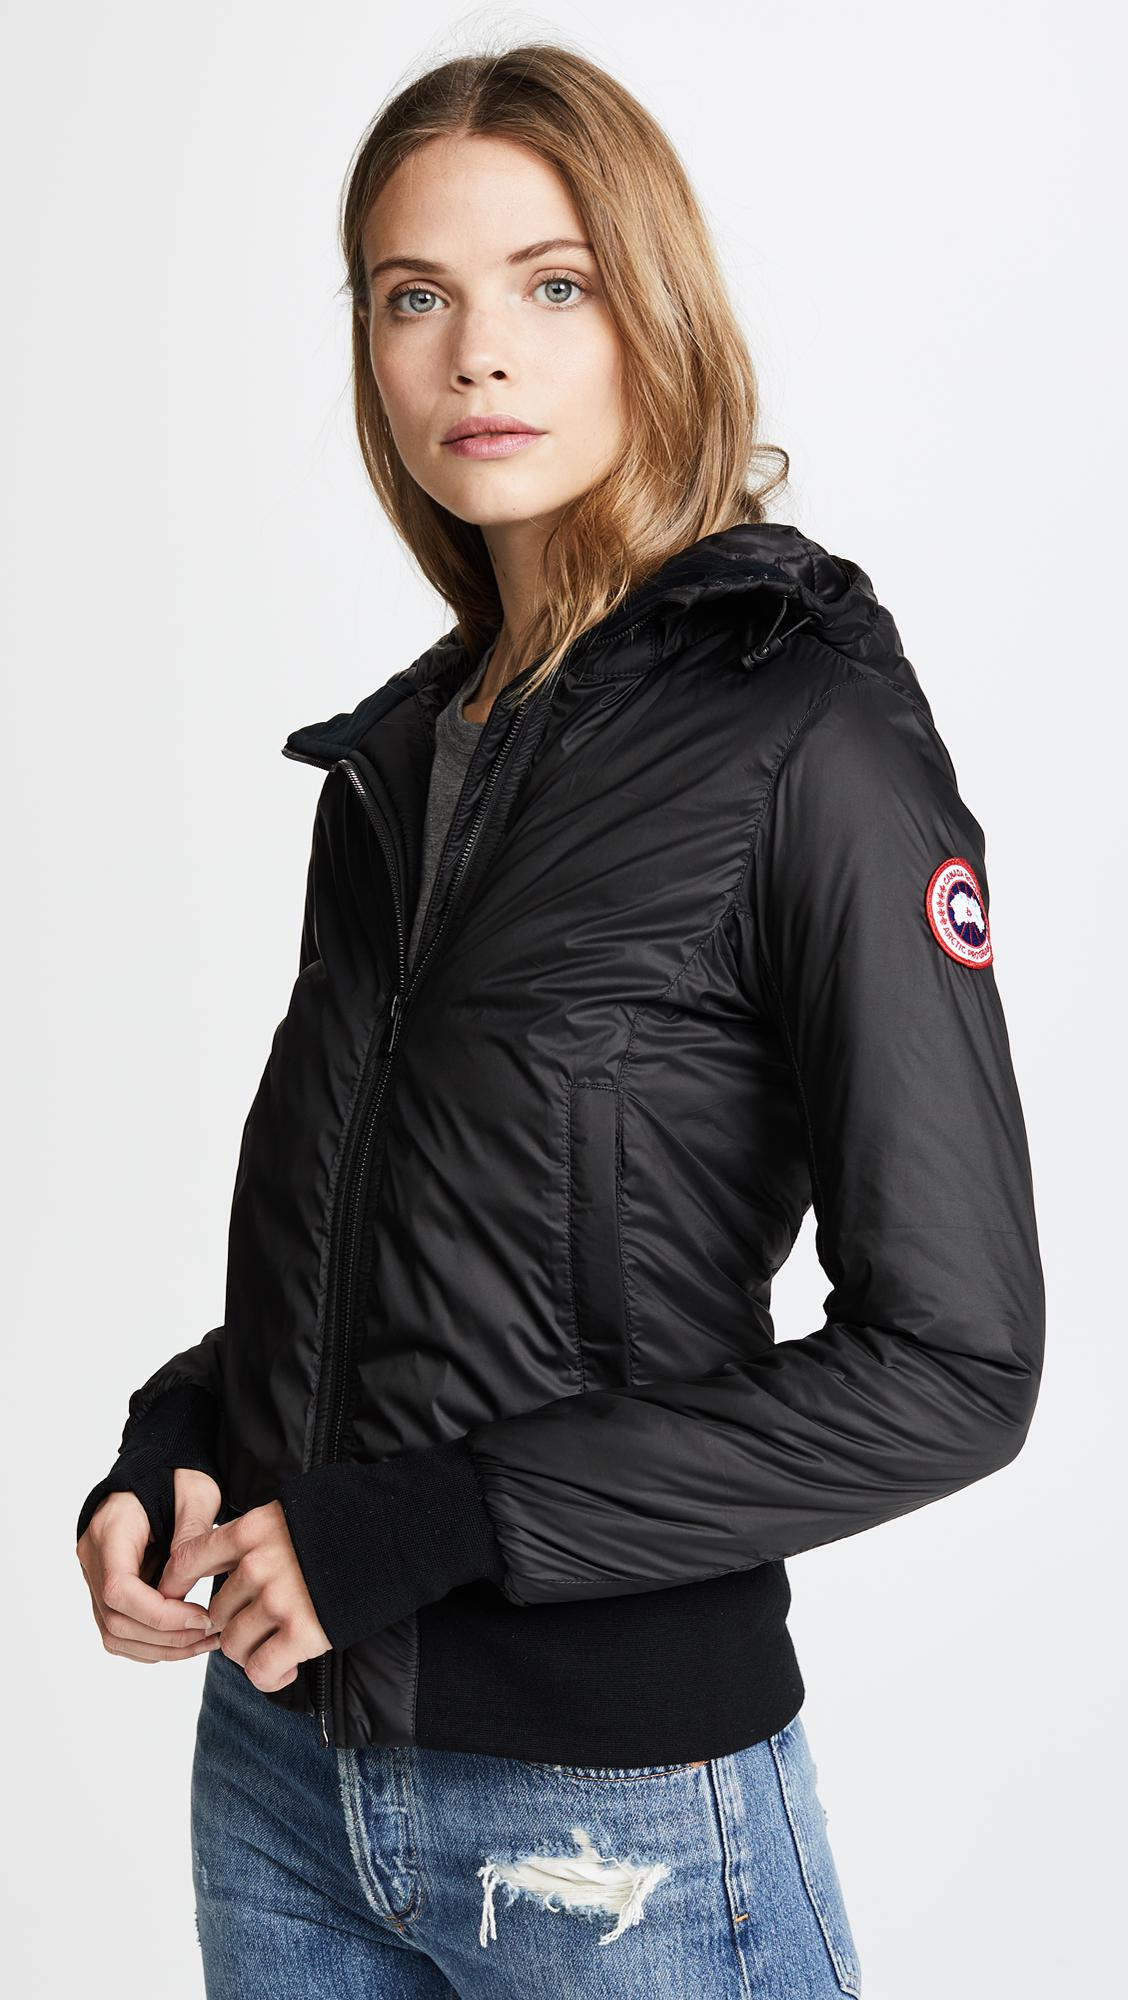 d18e62d7143b Canada Goose Dore Hooded Jacket in Black - Save 7% - Lyst